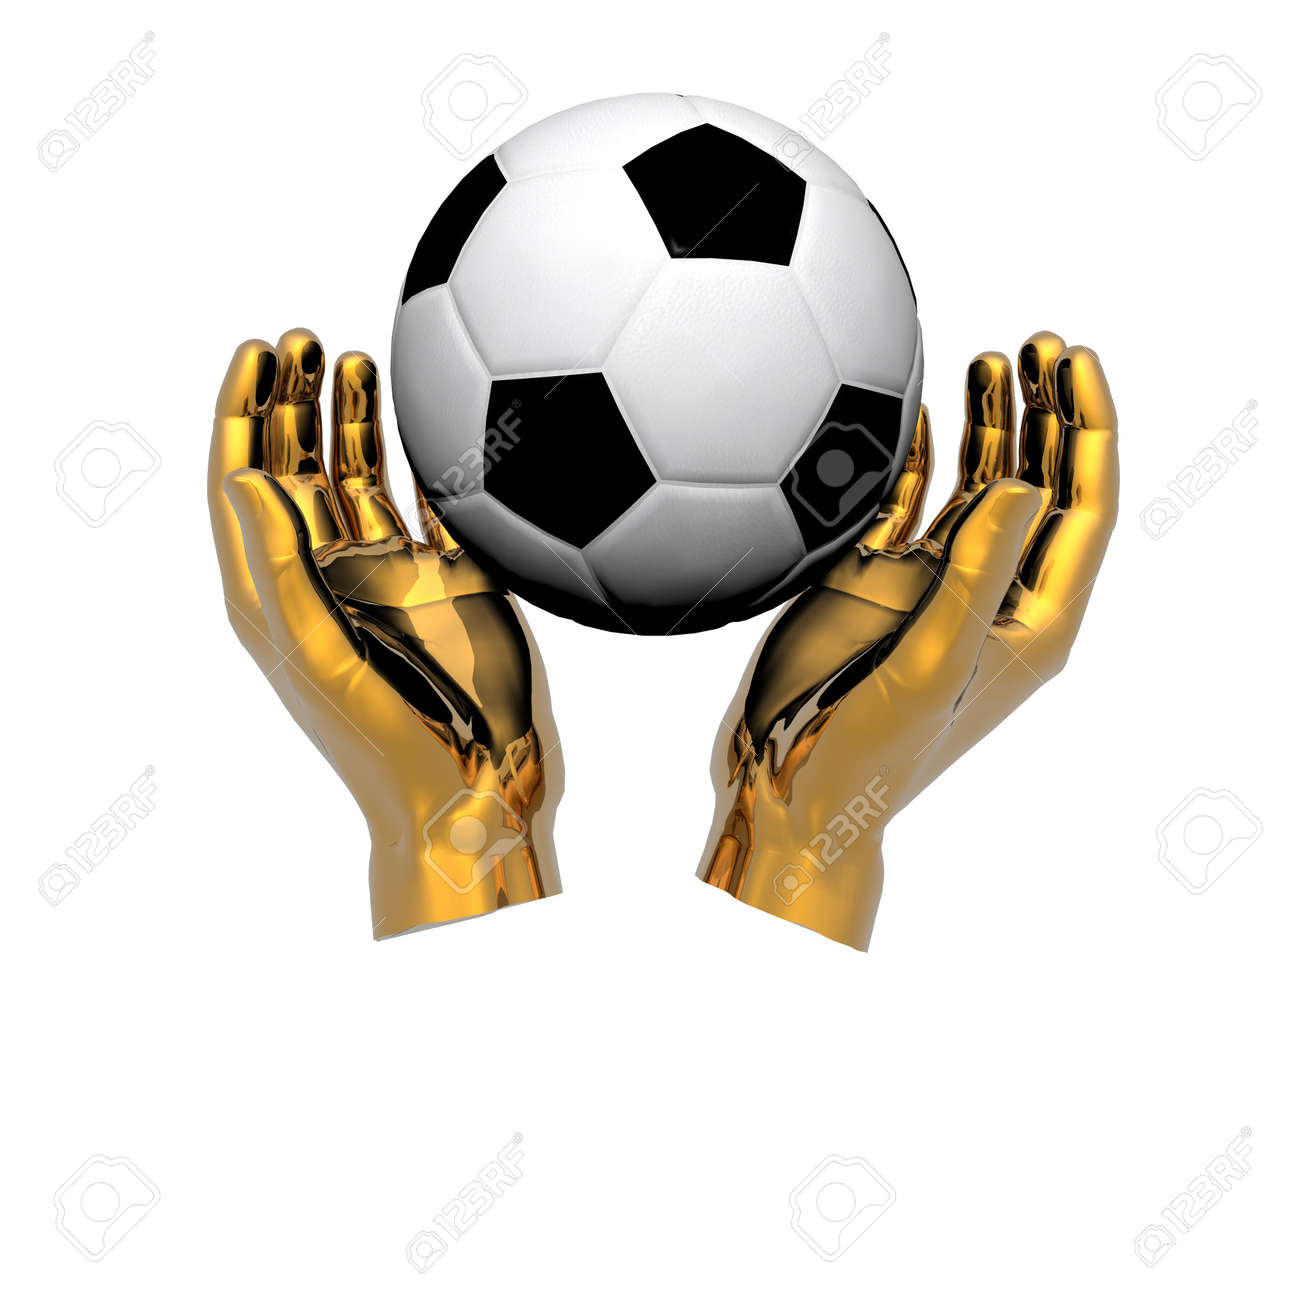 3d Soccer ball in hands isolated on a white background Stock Photo - 3879086